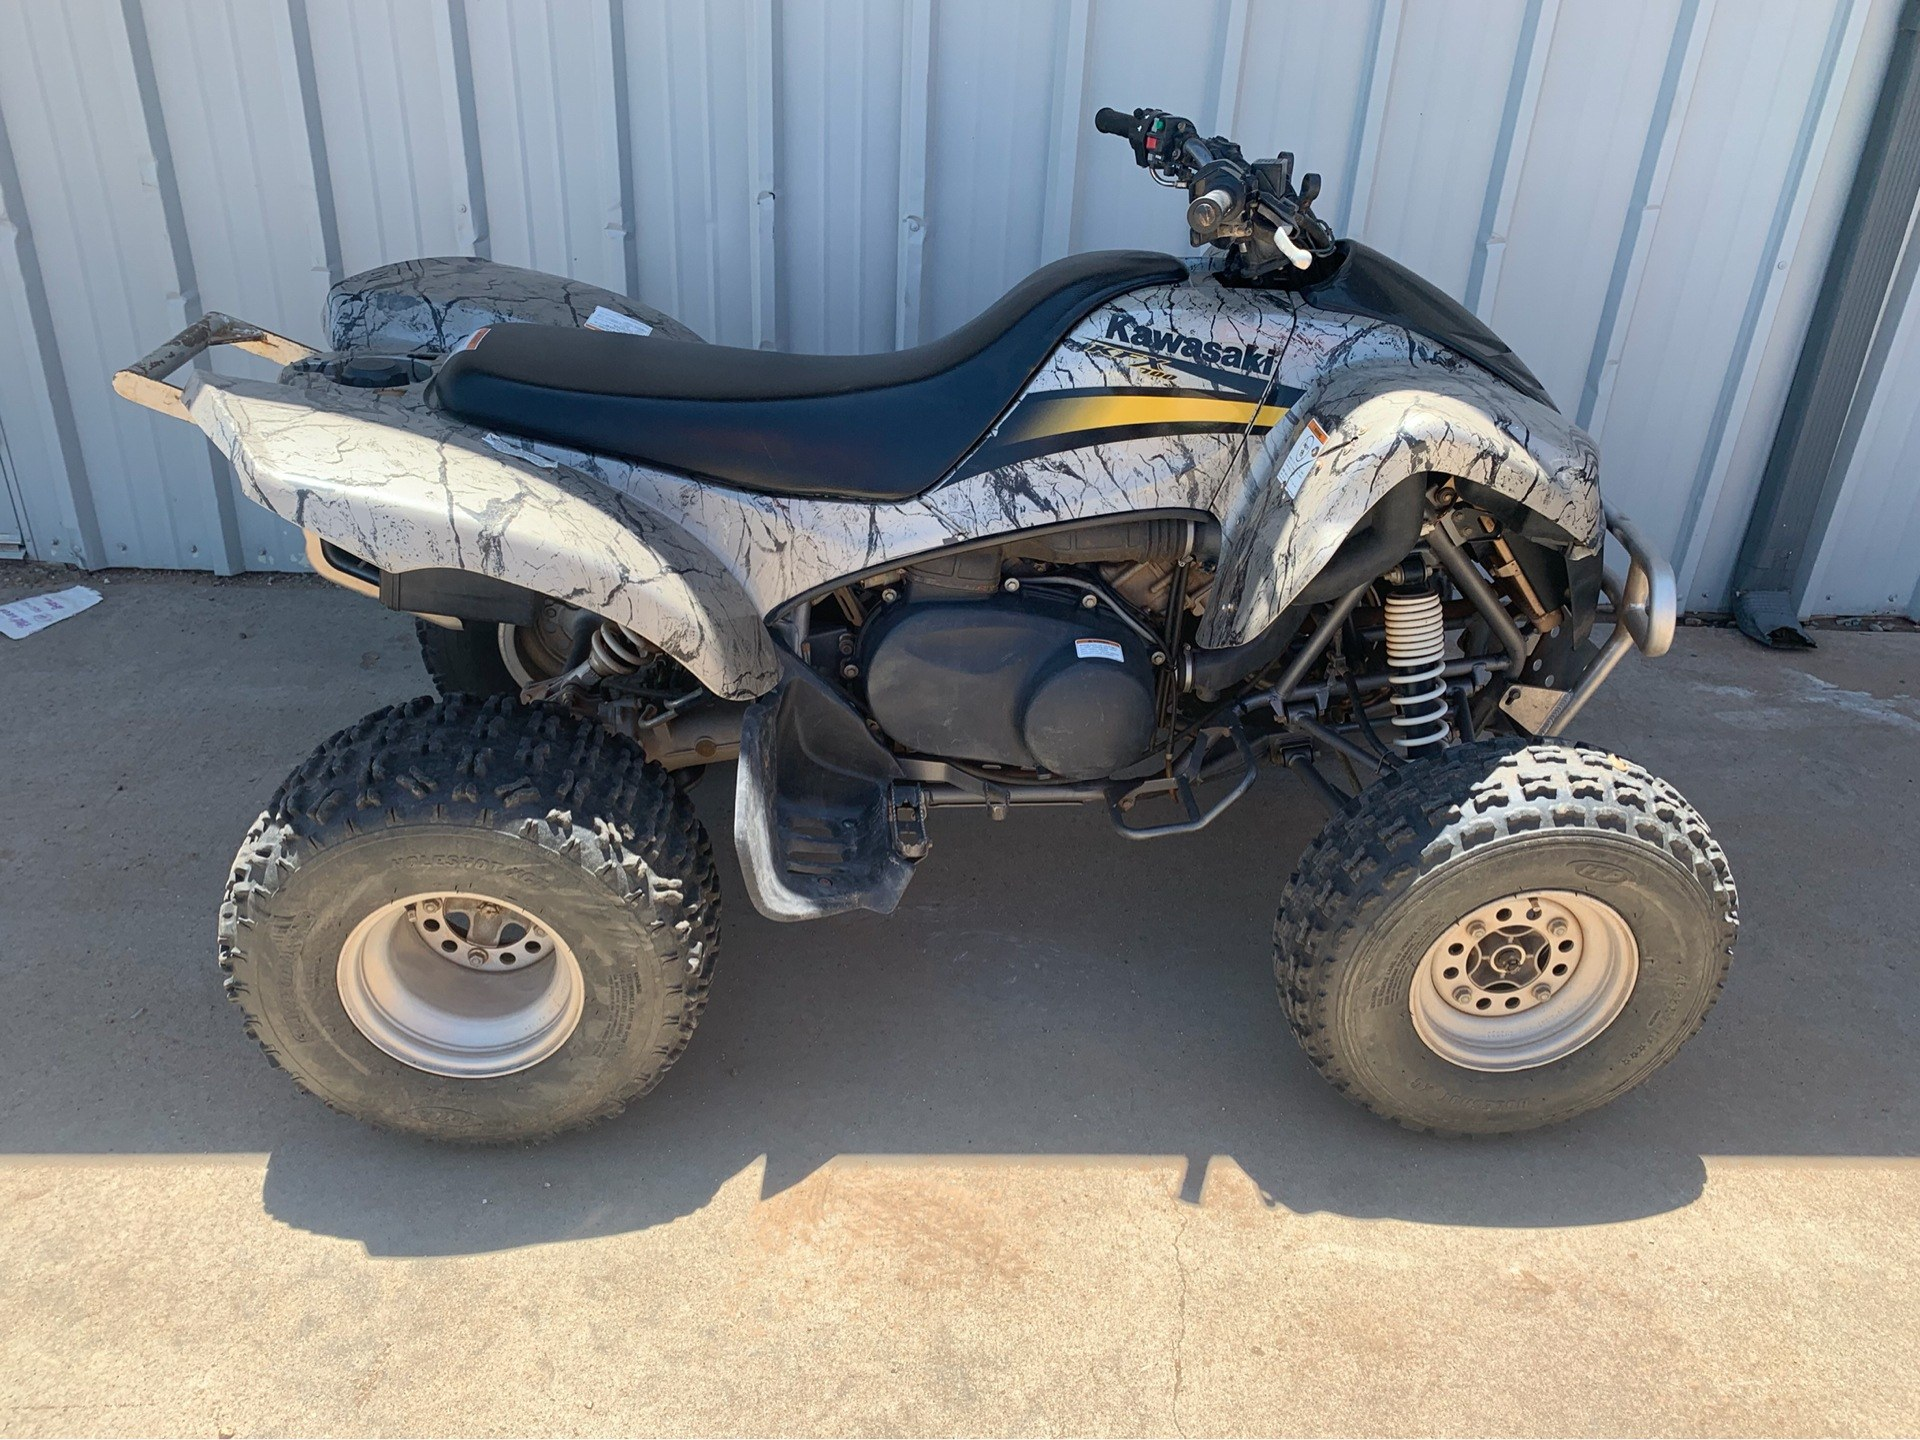 hight resolution of 2005 kawasaki kfx 700 ig in amarillo texas photo 1